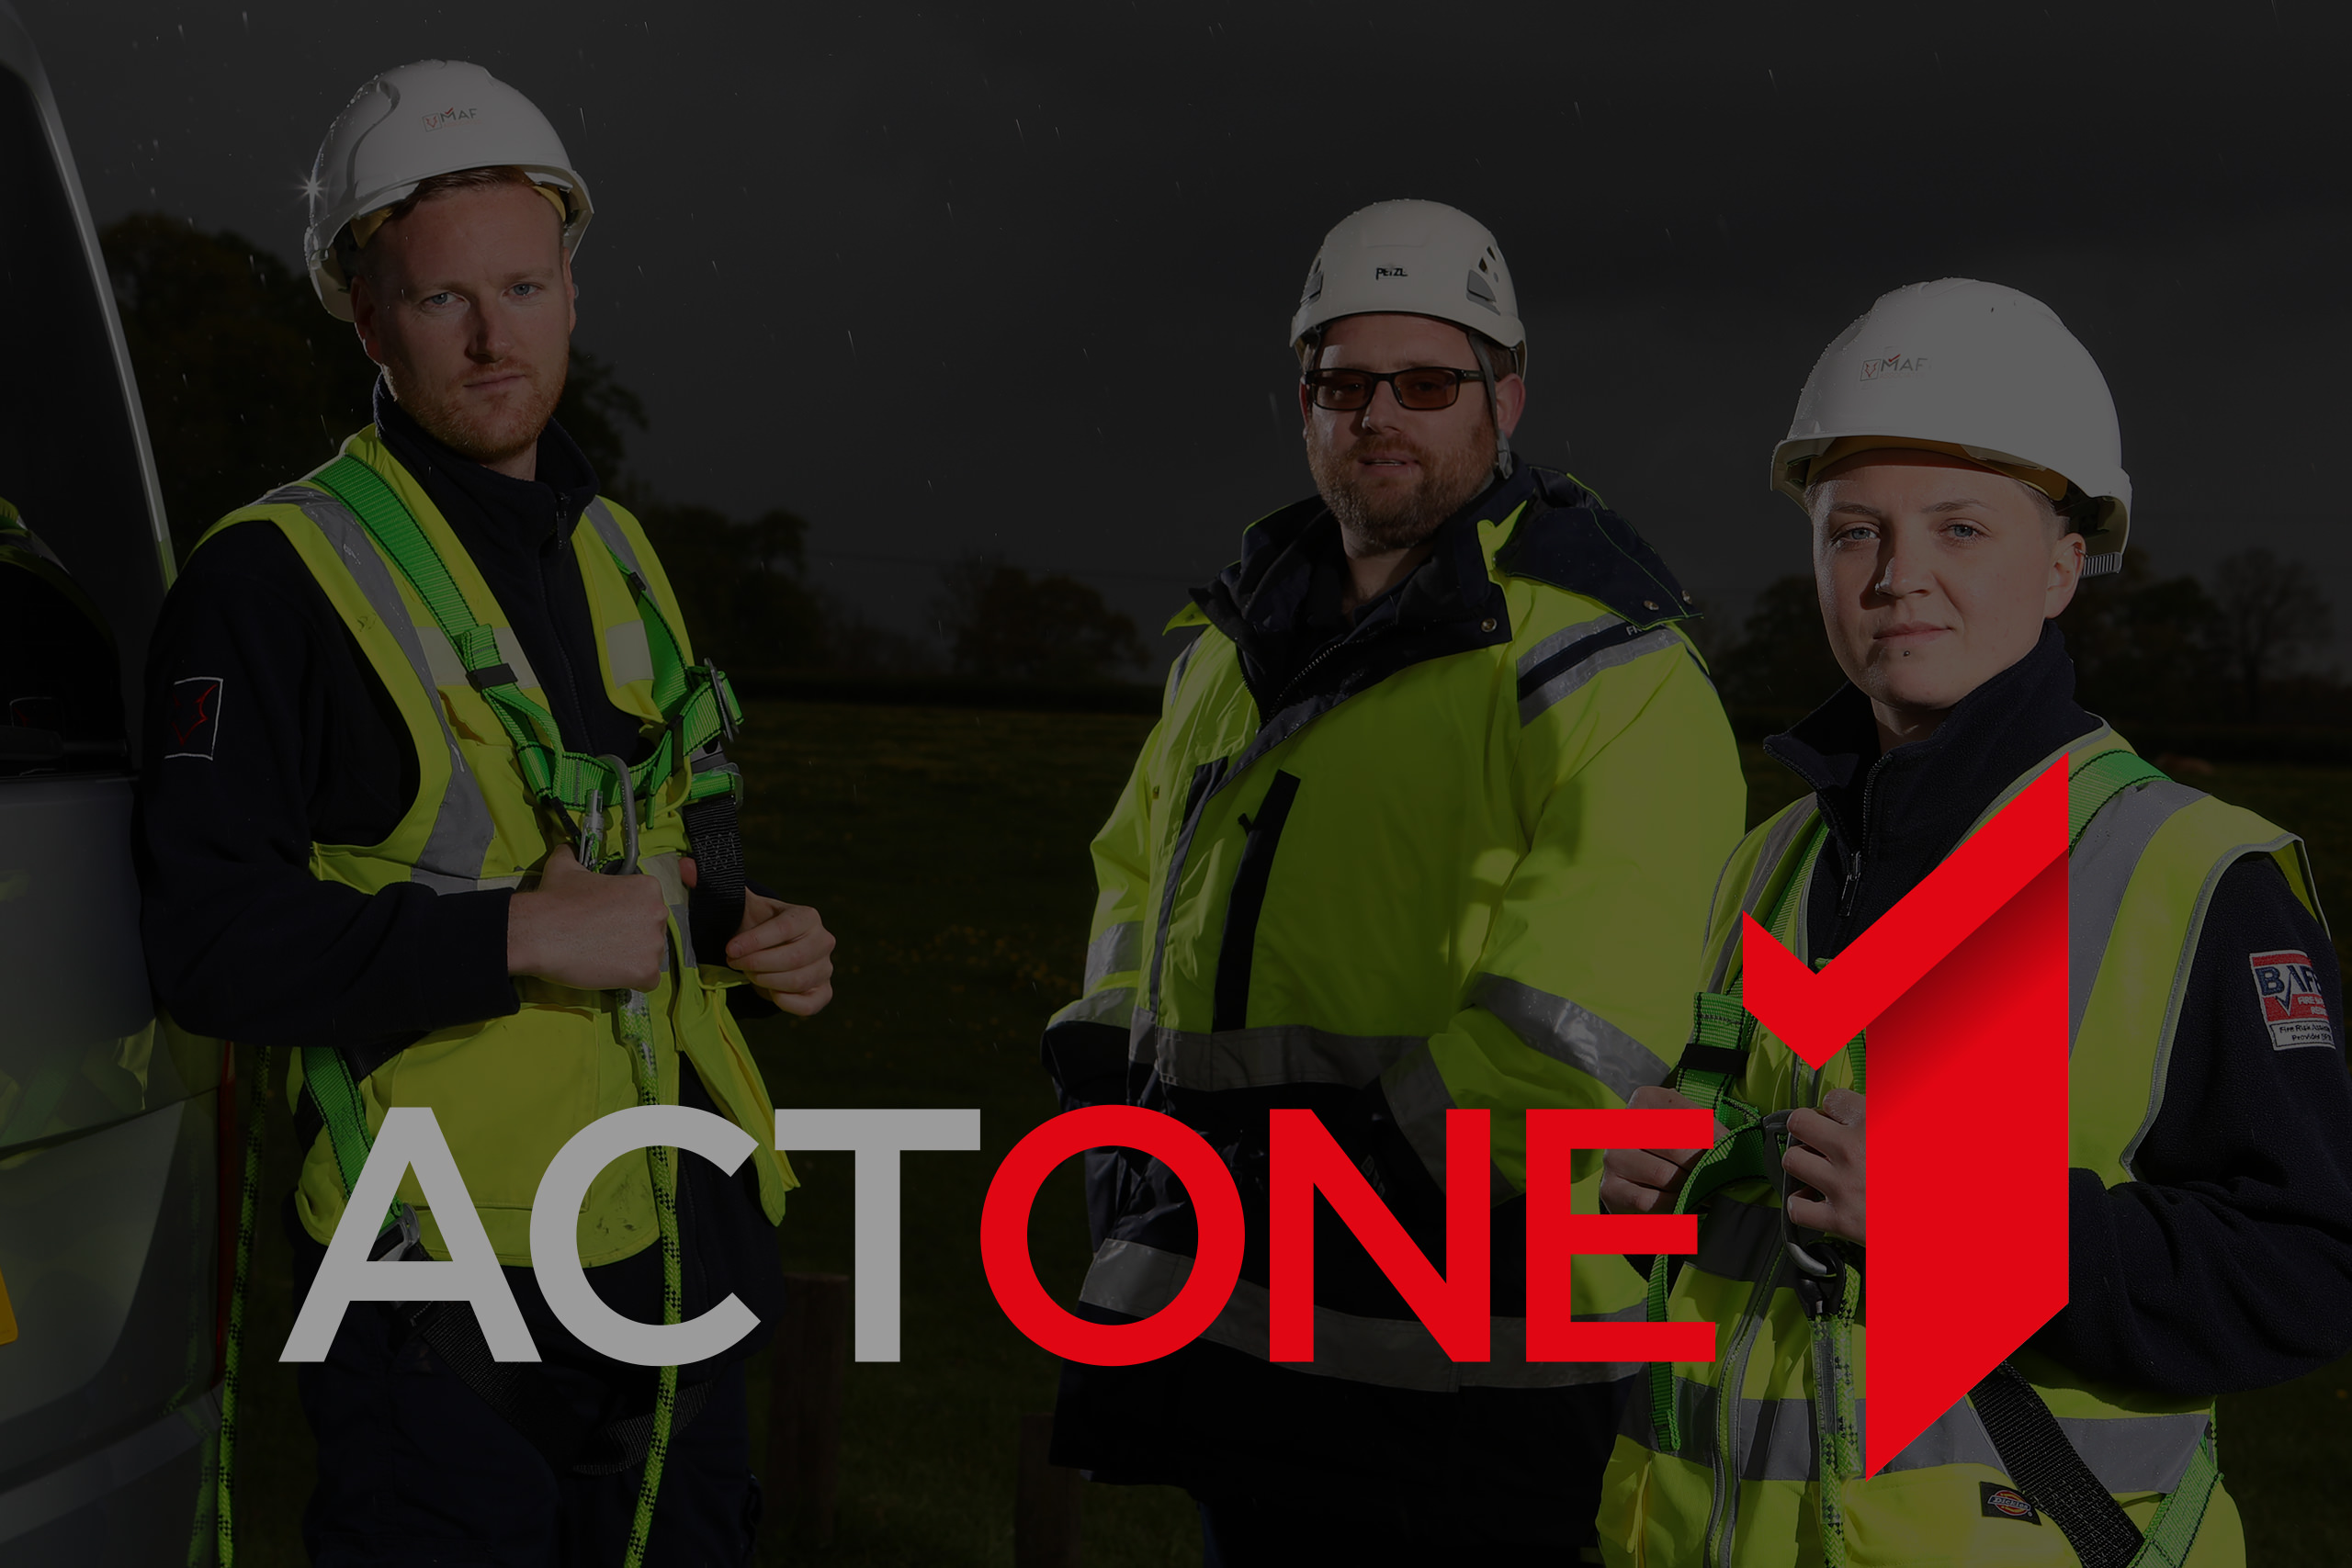 Act One Fire safety service